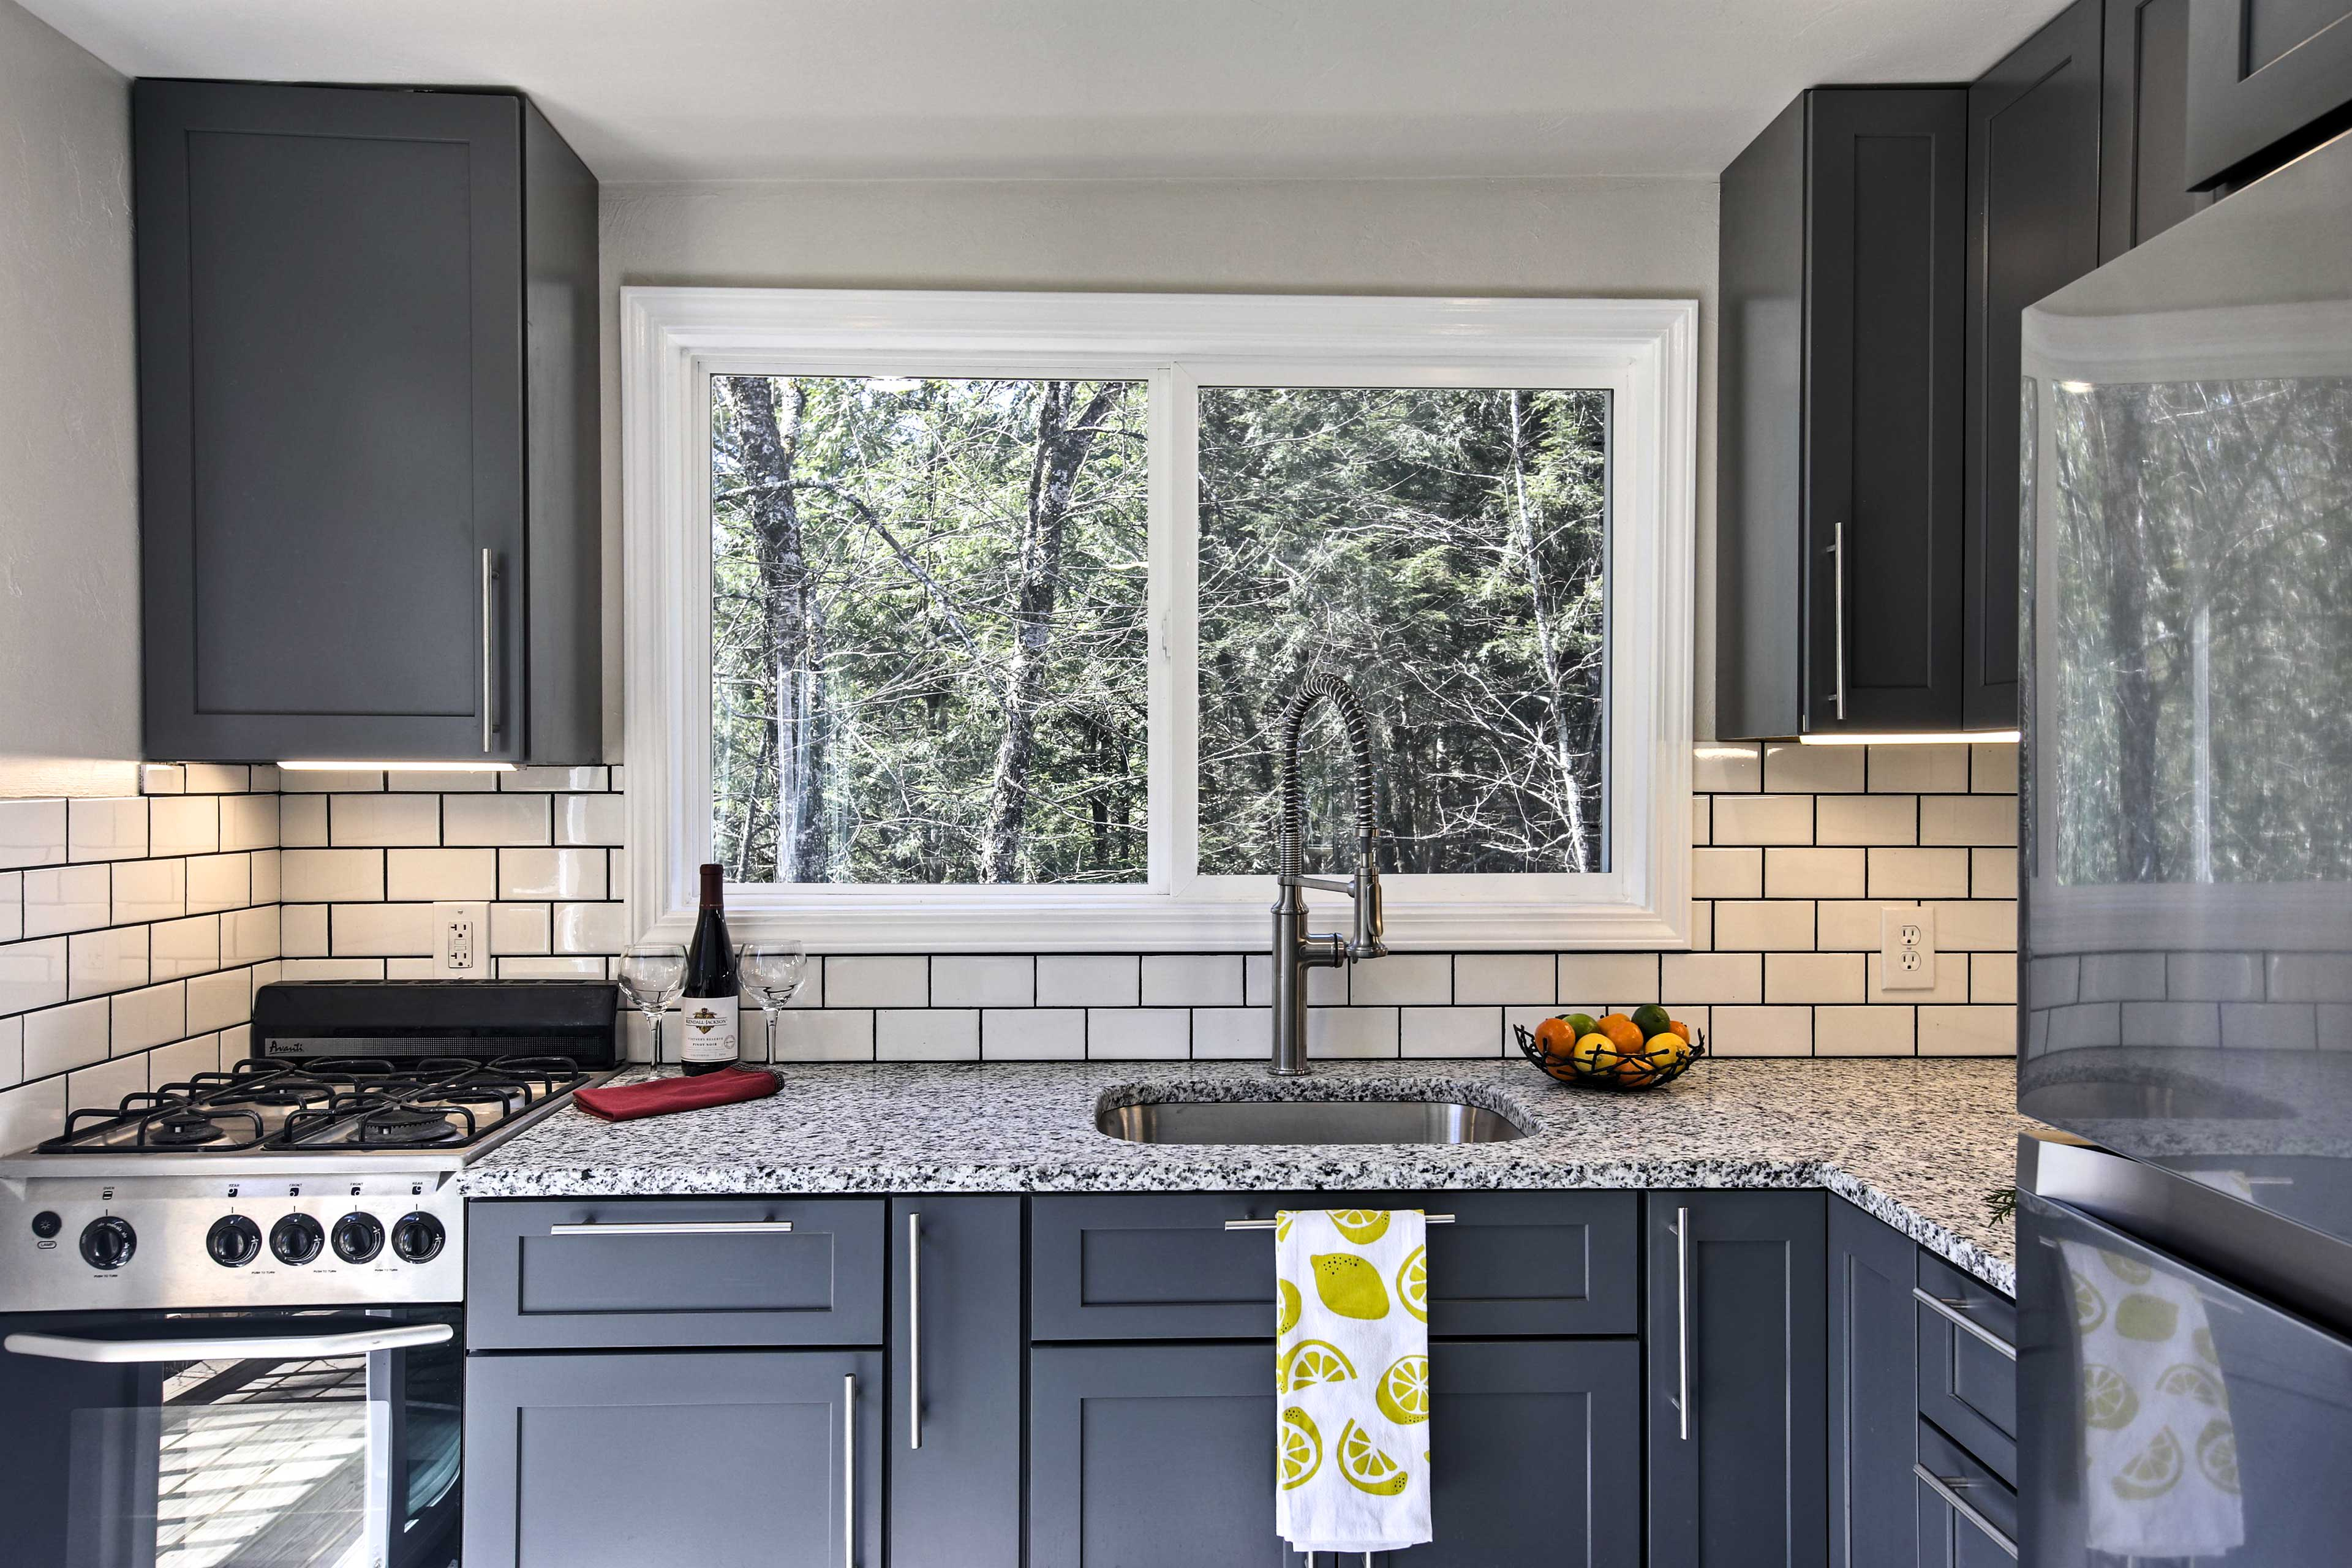 Dark cabinetry complements the sleek white tile in this well-equipped kitchen.